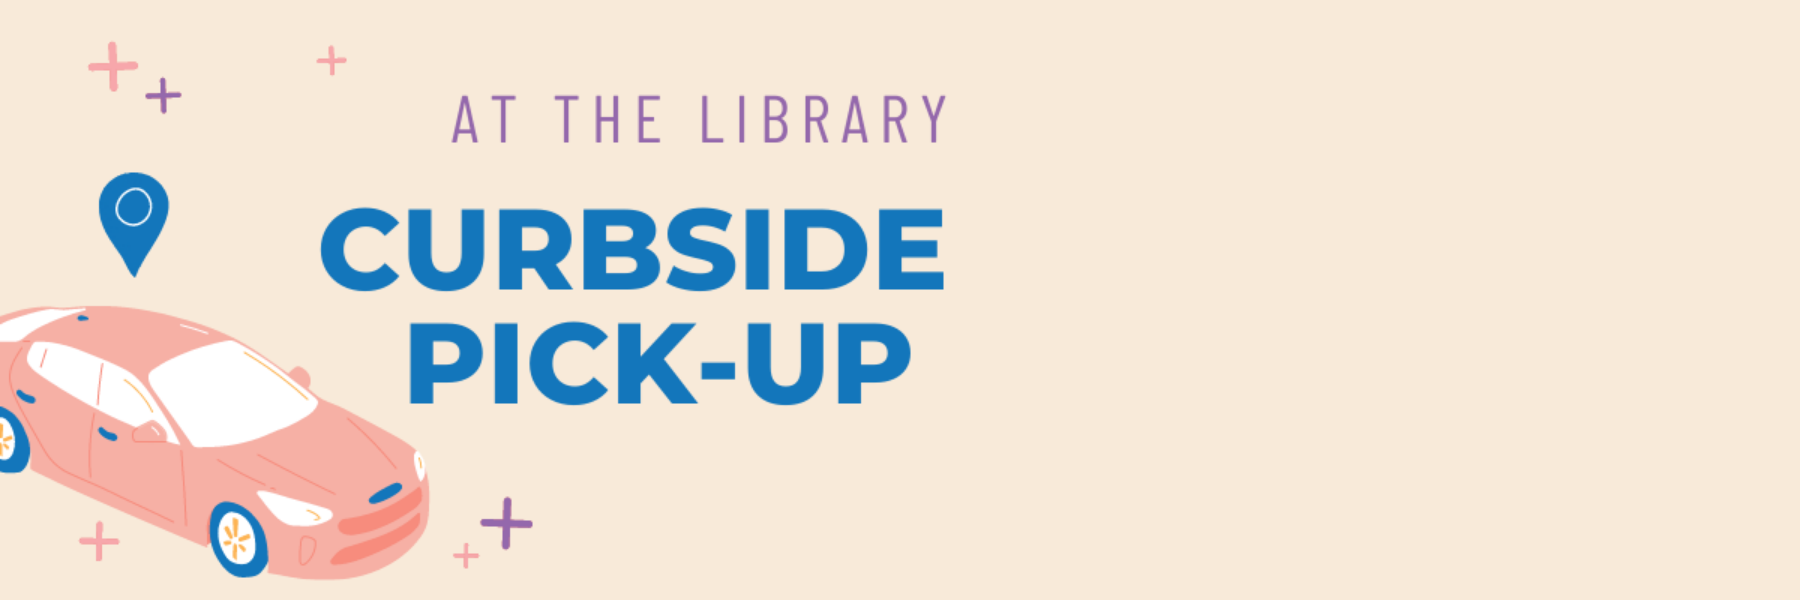 curbside pickup at the library